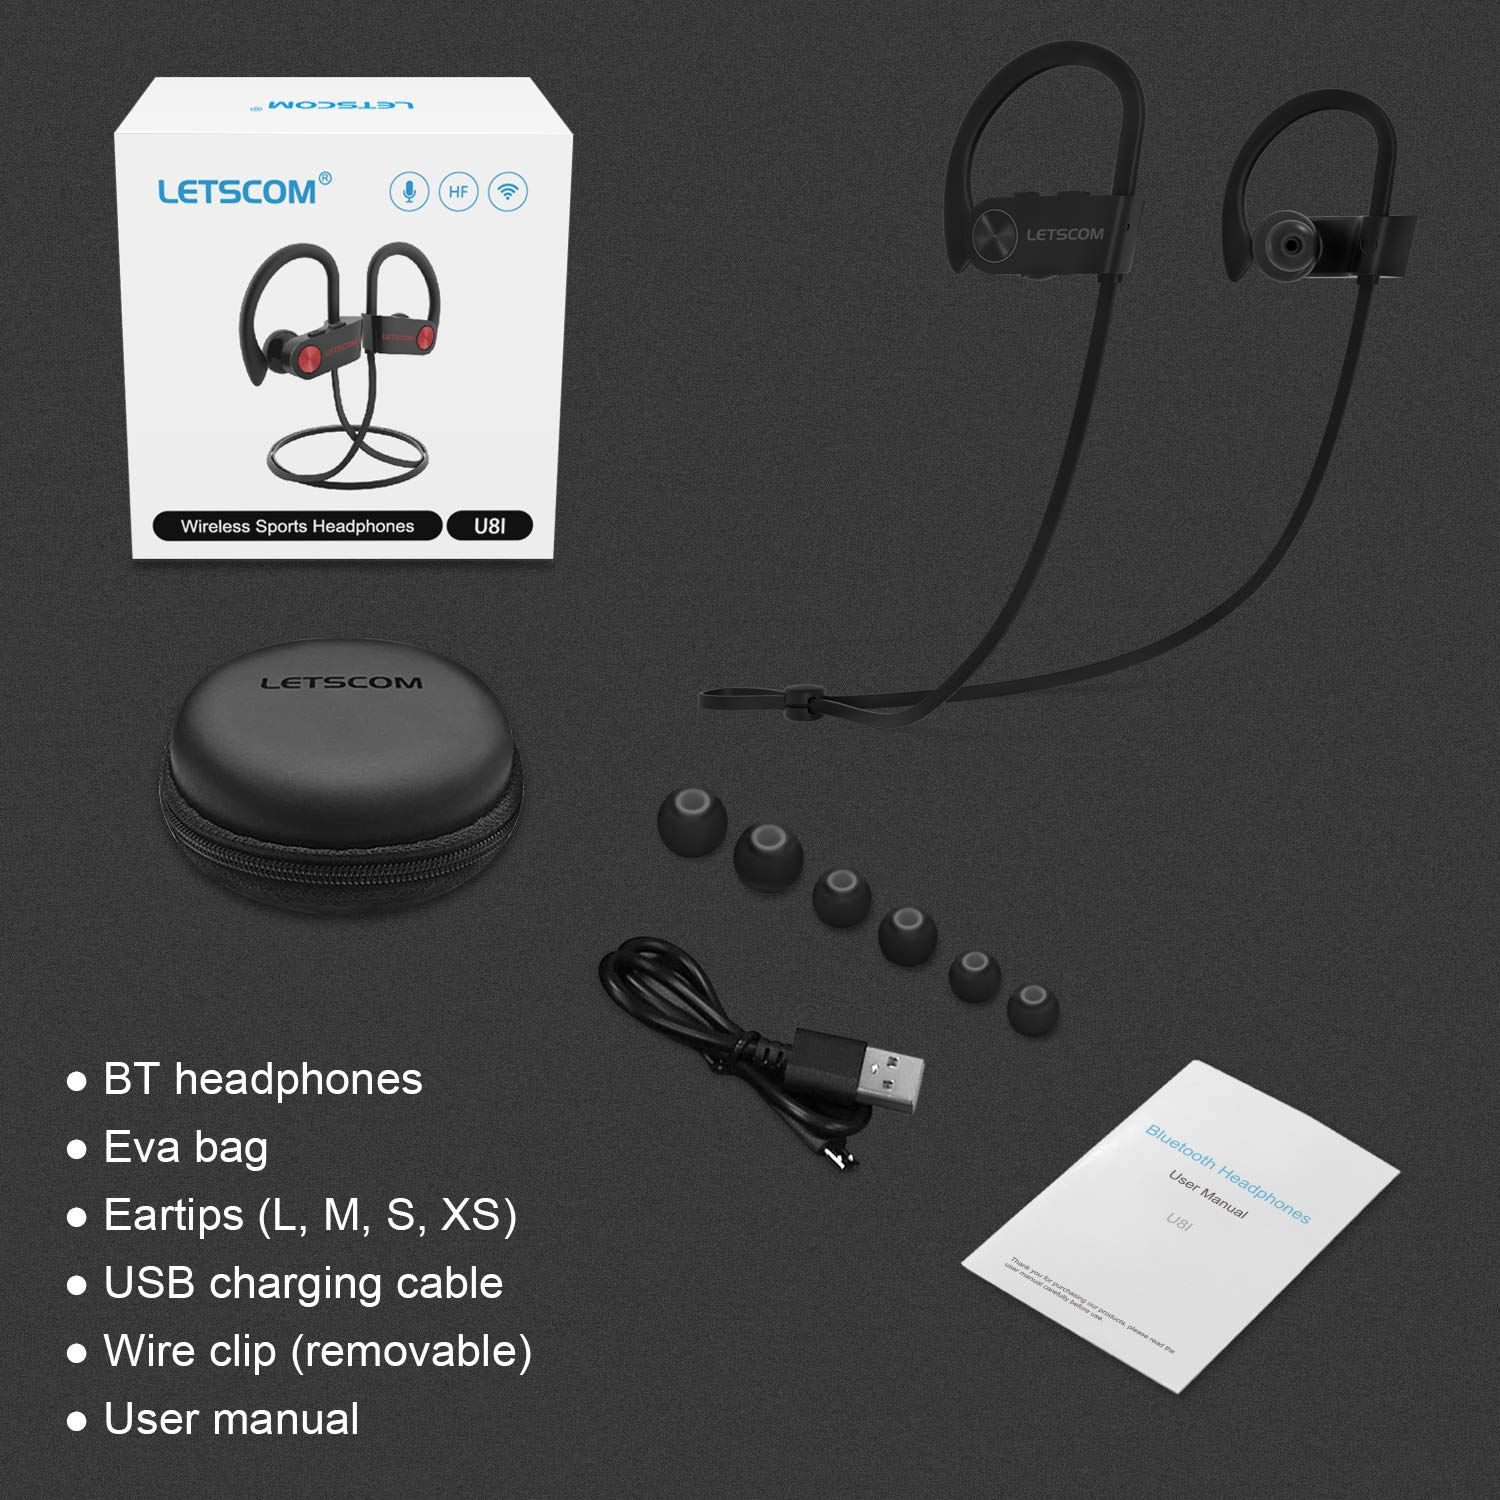 Bluetooth Headphones, LETSCOM Wireless Earbuds IPX7 Waterproof Noise Cancelling Headsets, Richer Bass & HiFi Stereo Sports Earphones 8 Hours Playtime Running Headphones with Travel Case by LETSCOM (Image #8)